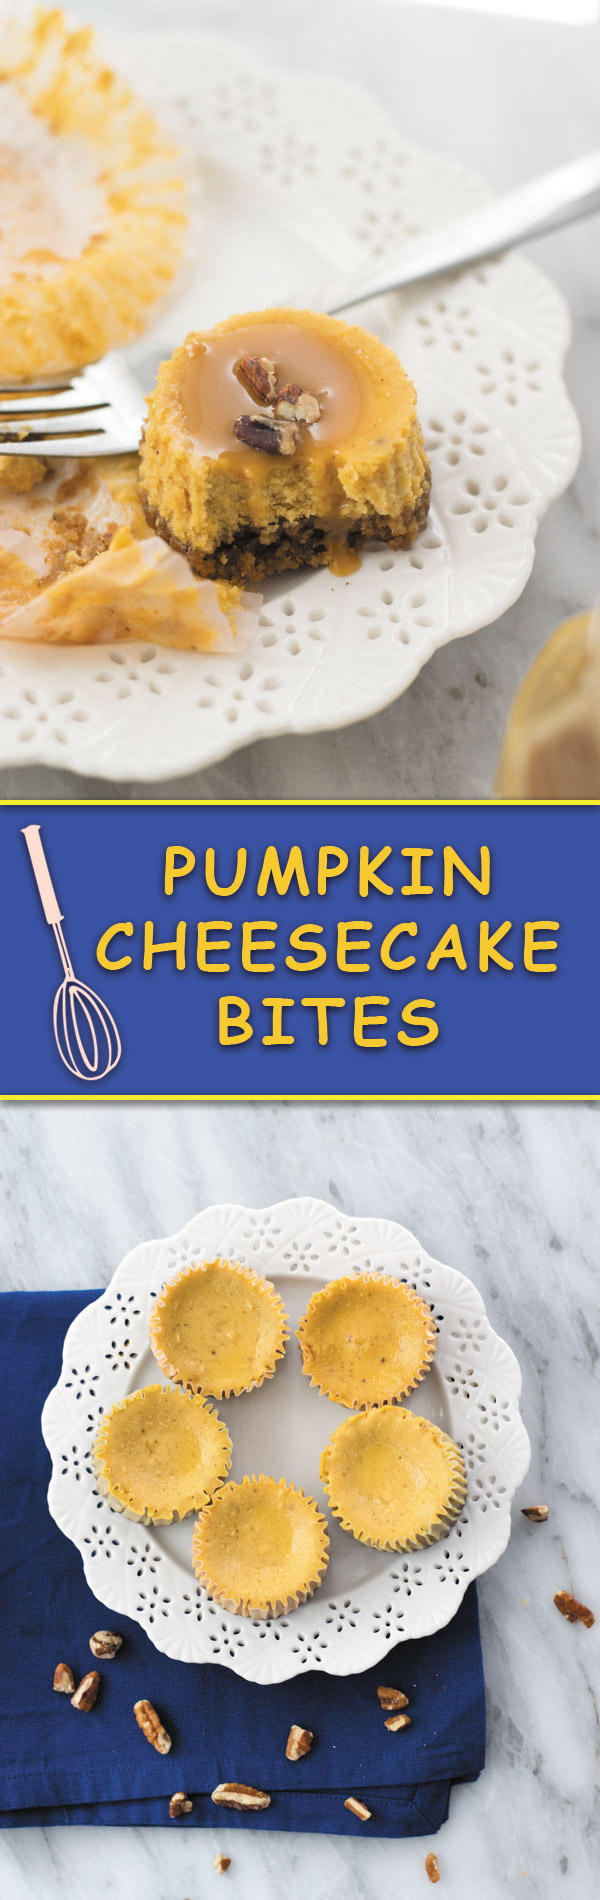 Pumpkin Cheesecake Bites - Delicious Pumpkin Cheesecake in bite forms ...